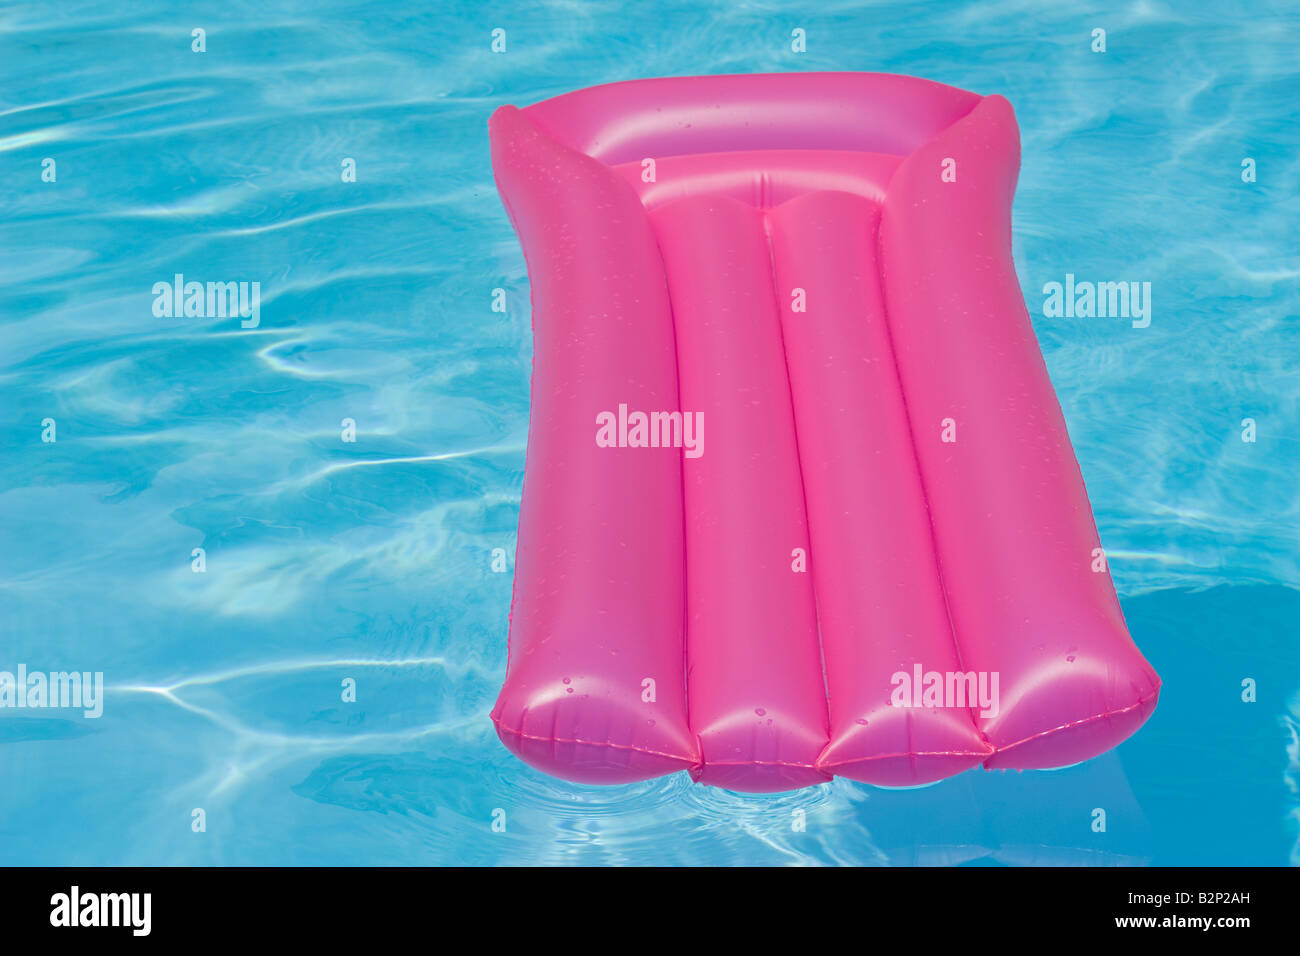 Pink inflatable chair floating in a swimming pool - Stock Image & Pink Inflatable Chair Stock Photos u0026 Pink Inflatable Chair Stock ...